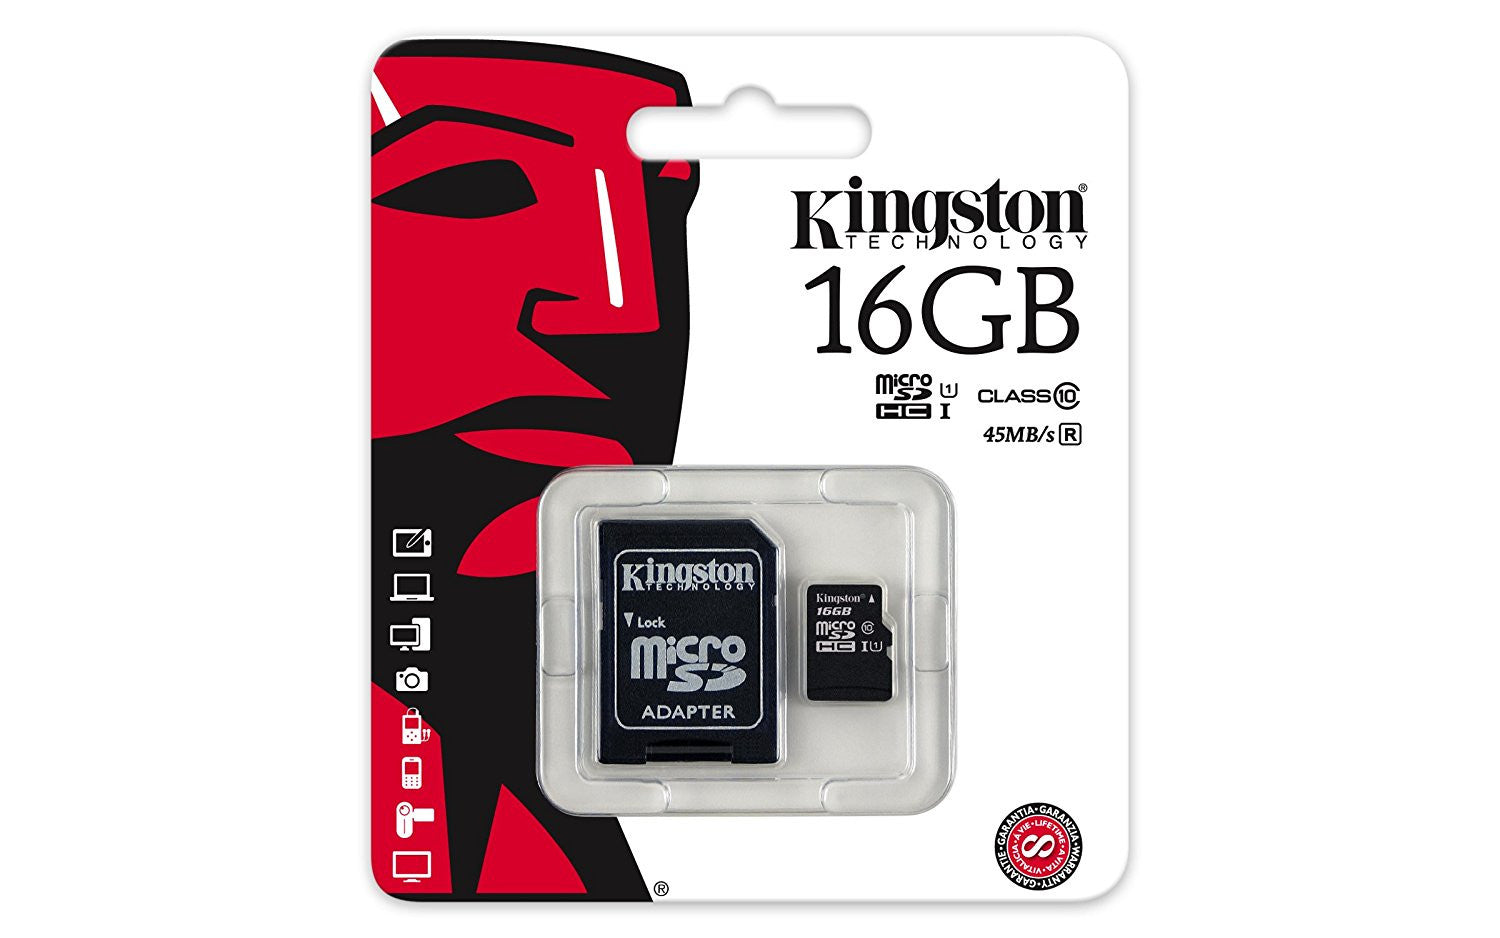 Kingston 16 GB microSDXC - Class 10/UHS-I - 45 MB/s Read - 10 MB/s Write - Retail